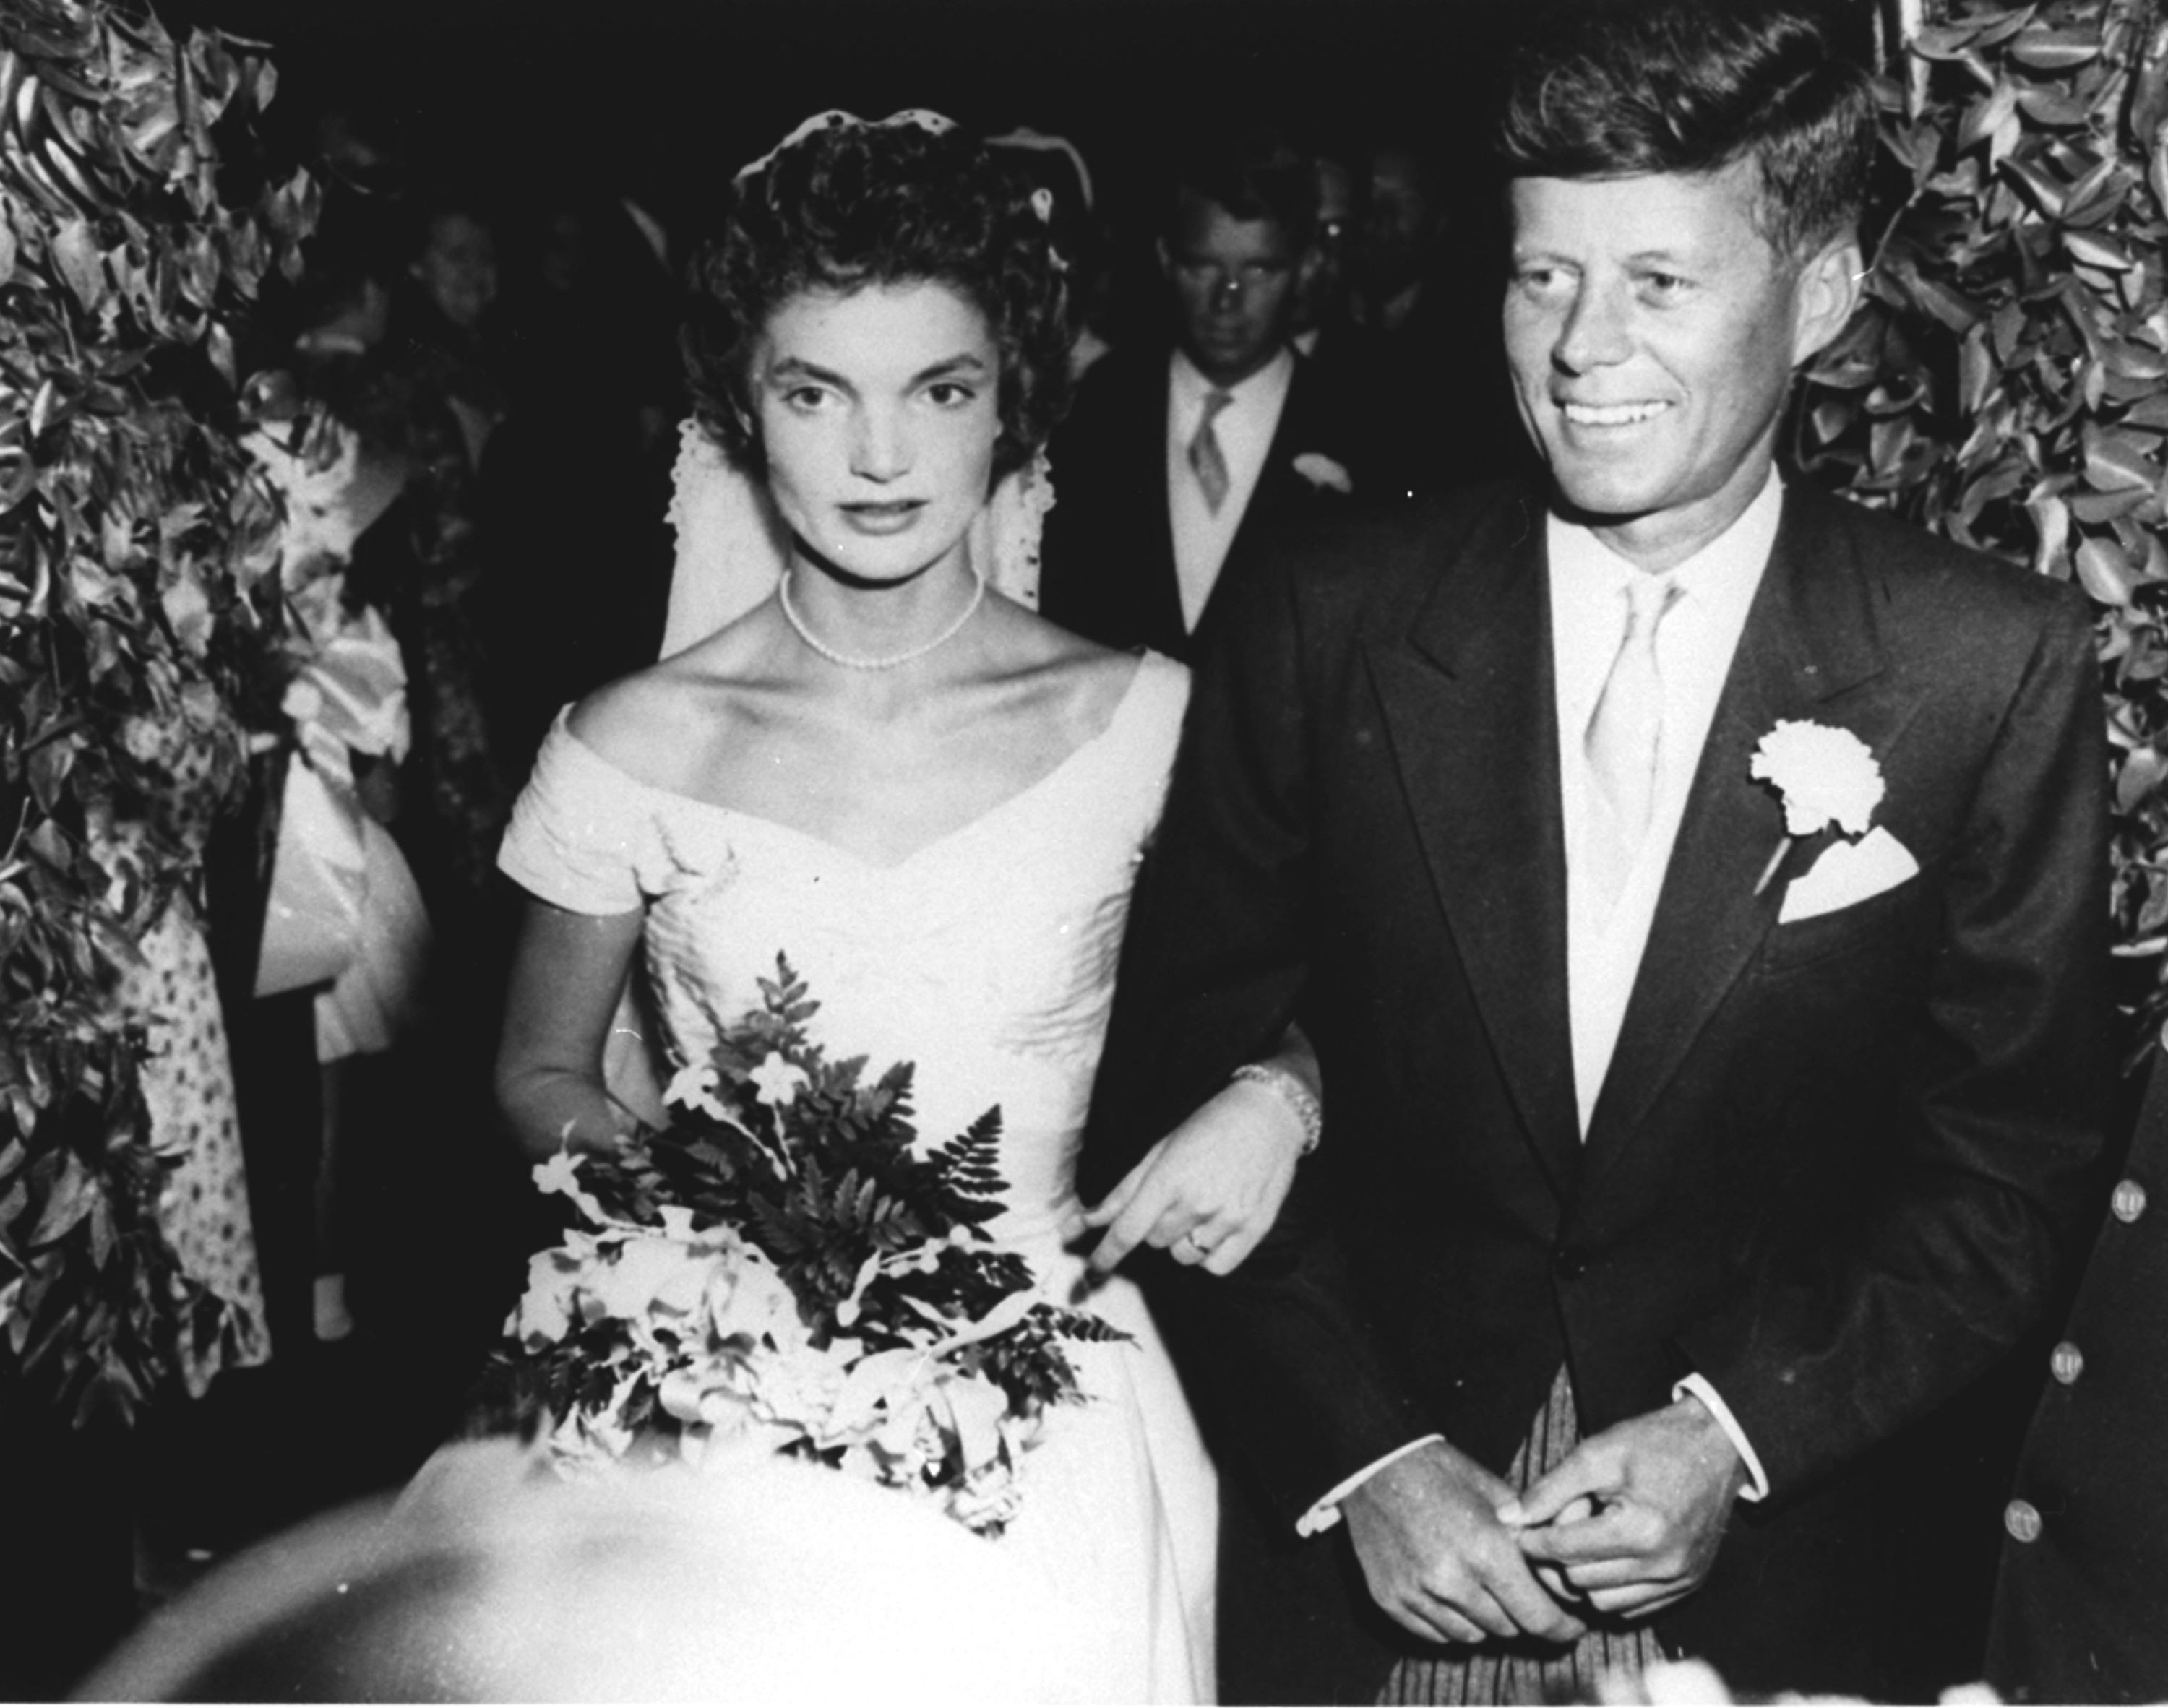 <div class='meta'><div class='origin-logo' data-origin='none'></div><span class='caption-text' data-credit='ASSOCIATED PRESS'>Sen. John F. Kennedy (D-MA) and his bride, the former Jacqueline Lee Bouvier, leave St. Mary's Catholic Church following their wedding in Newport, RI, September 12, 1953.</span></div>